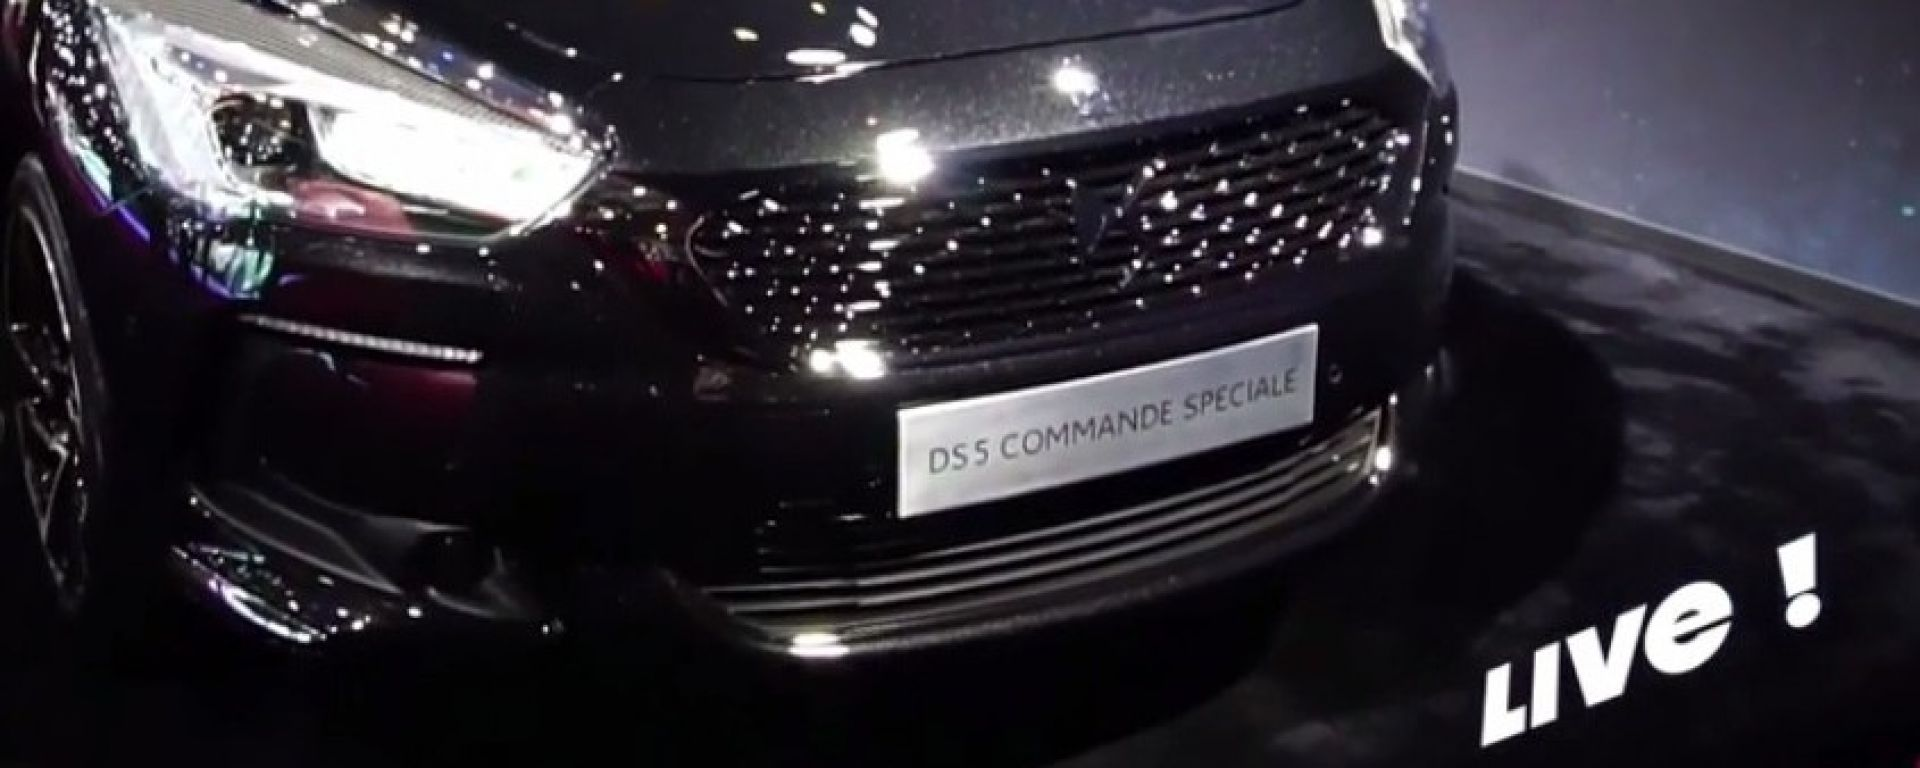 Live Parigi 2016: DS 5 Commande Speciale in video